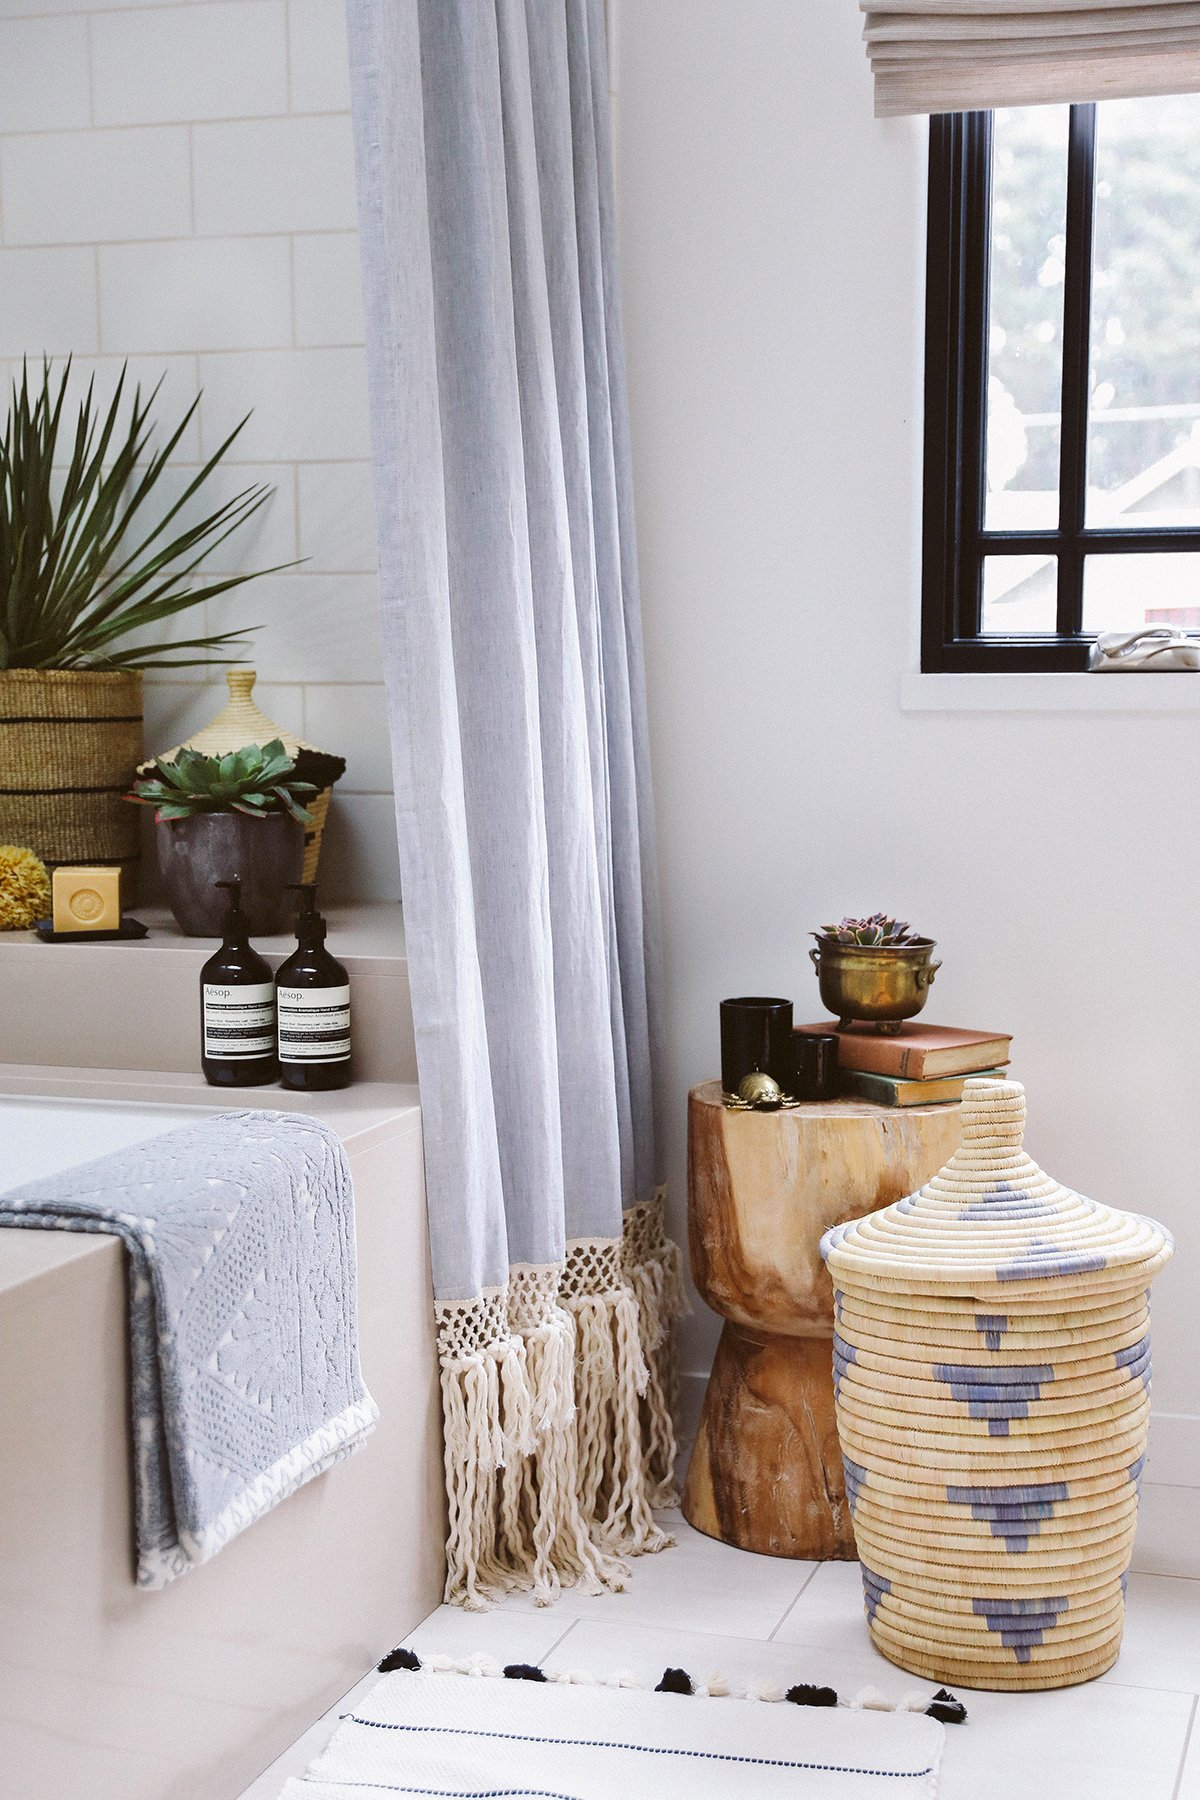 Get Your Bathroom Ready For Spring By Adding Unique Storage Options Want To Find Out